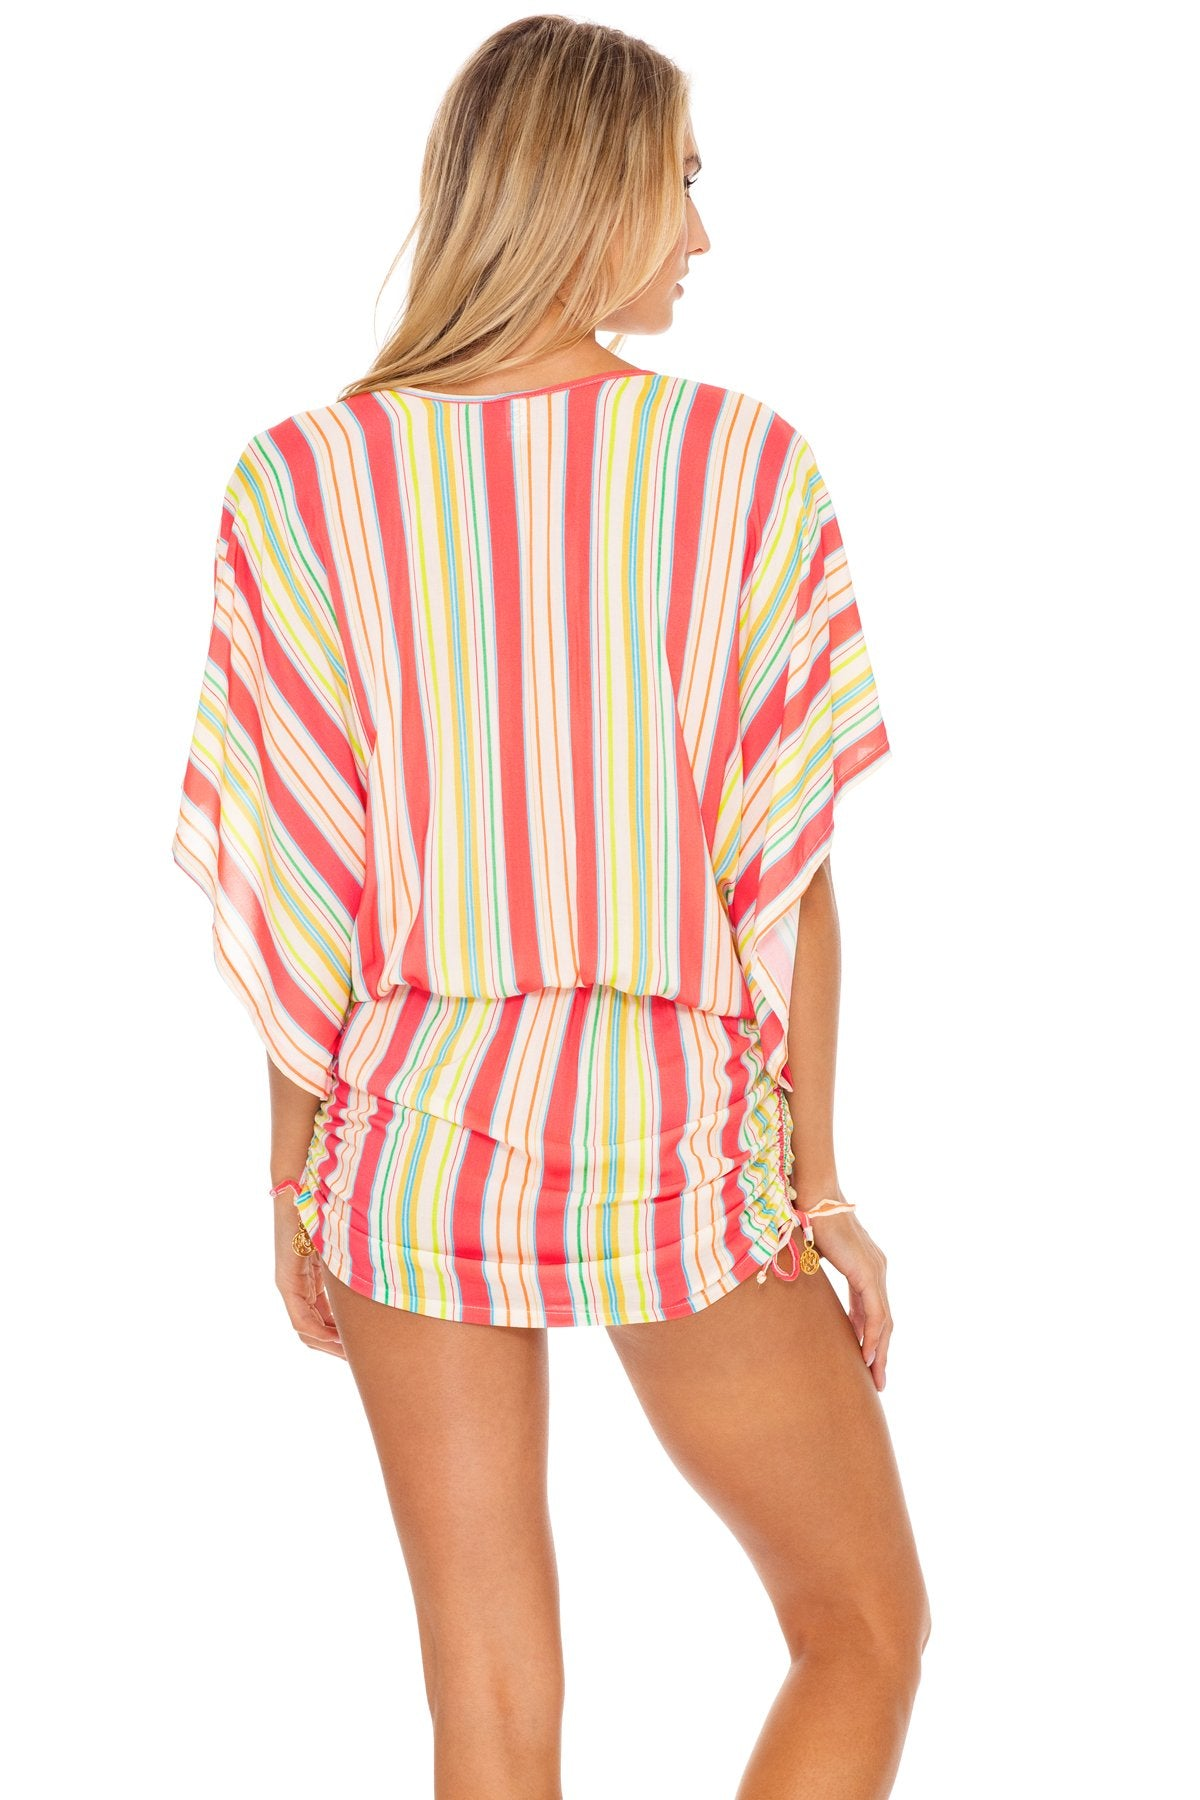 PLAY TIME - Cabana V Neck Dress • Multi White